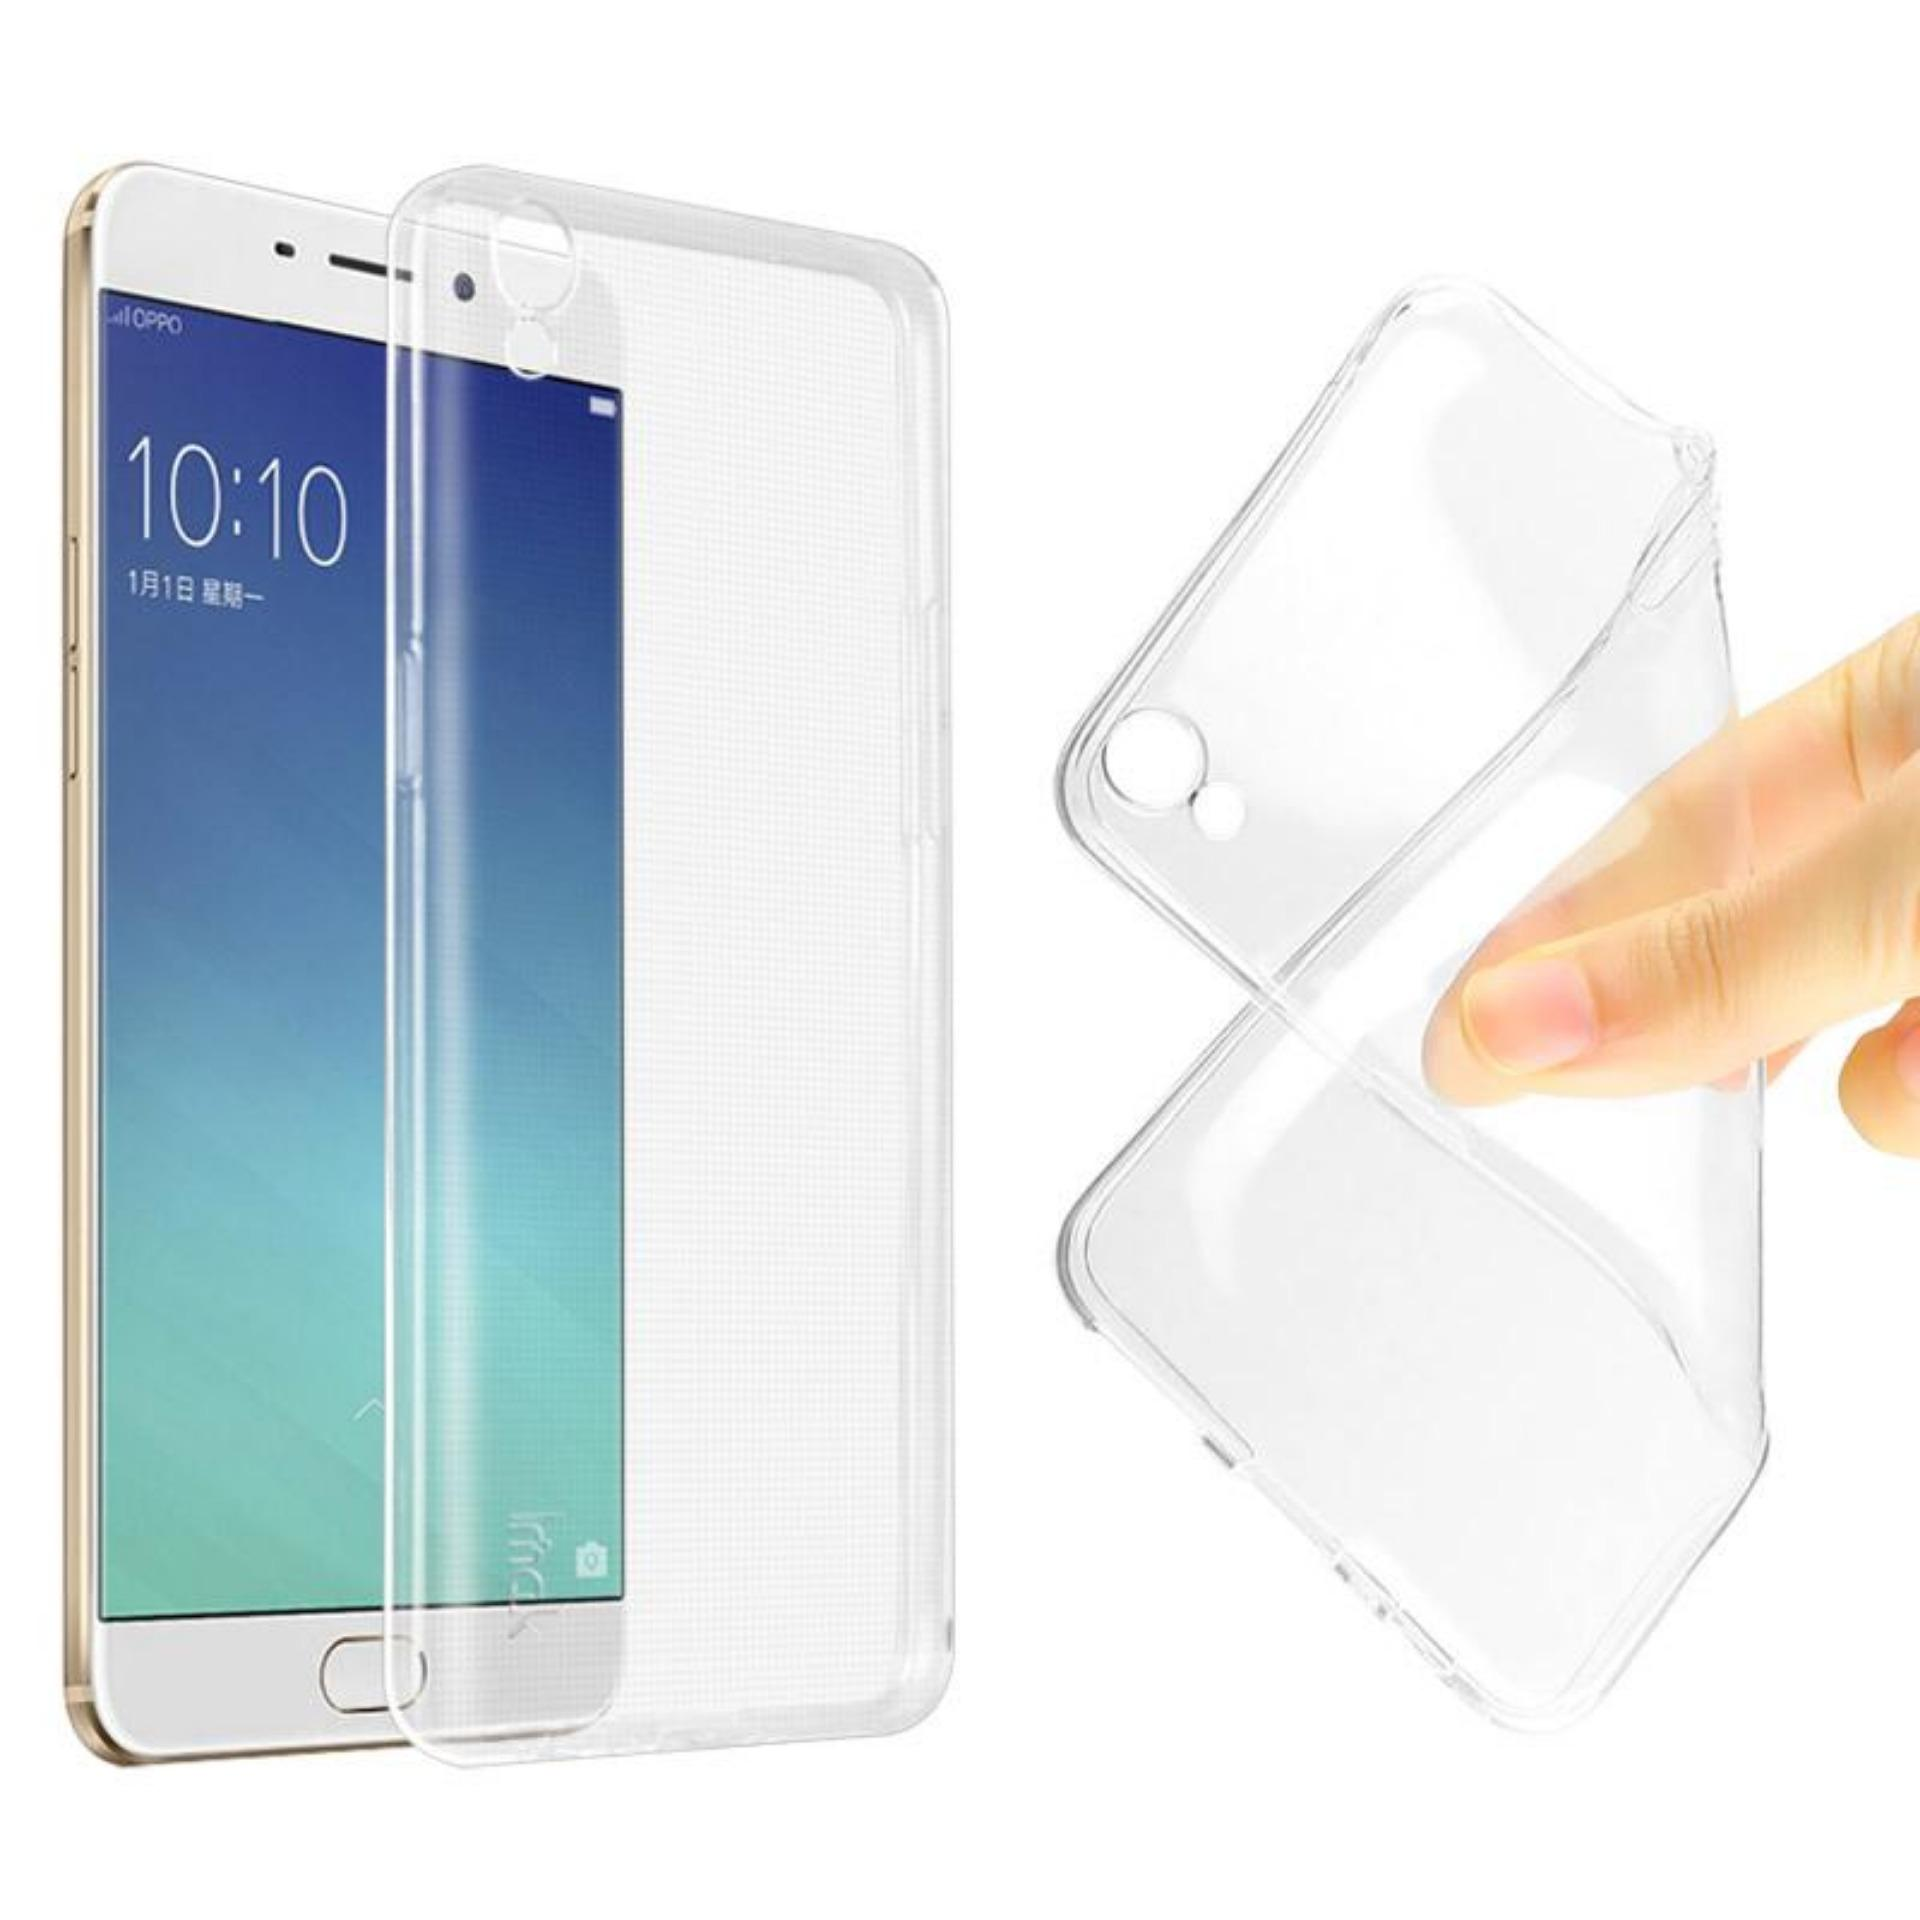 Kelebihan Lollypop Ultrathin Tpu Oppo F5 Clear Transparant Bening Softcase Silicone Backcase Backcover Case Hp Casing